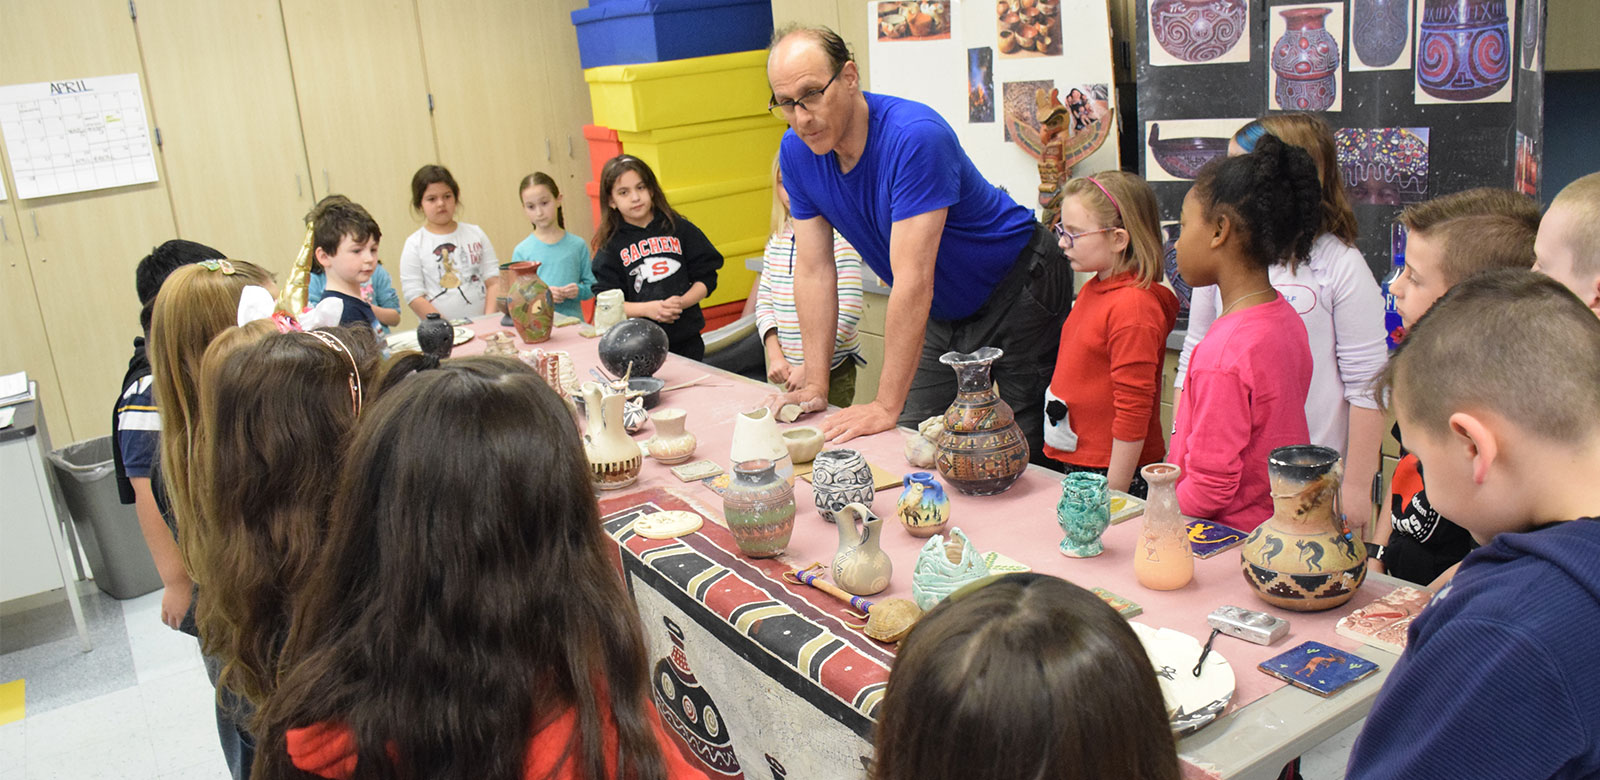 Professional Artist Shares Lessons in Cultural Creations